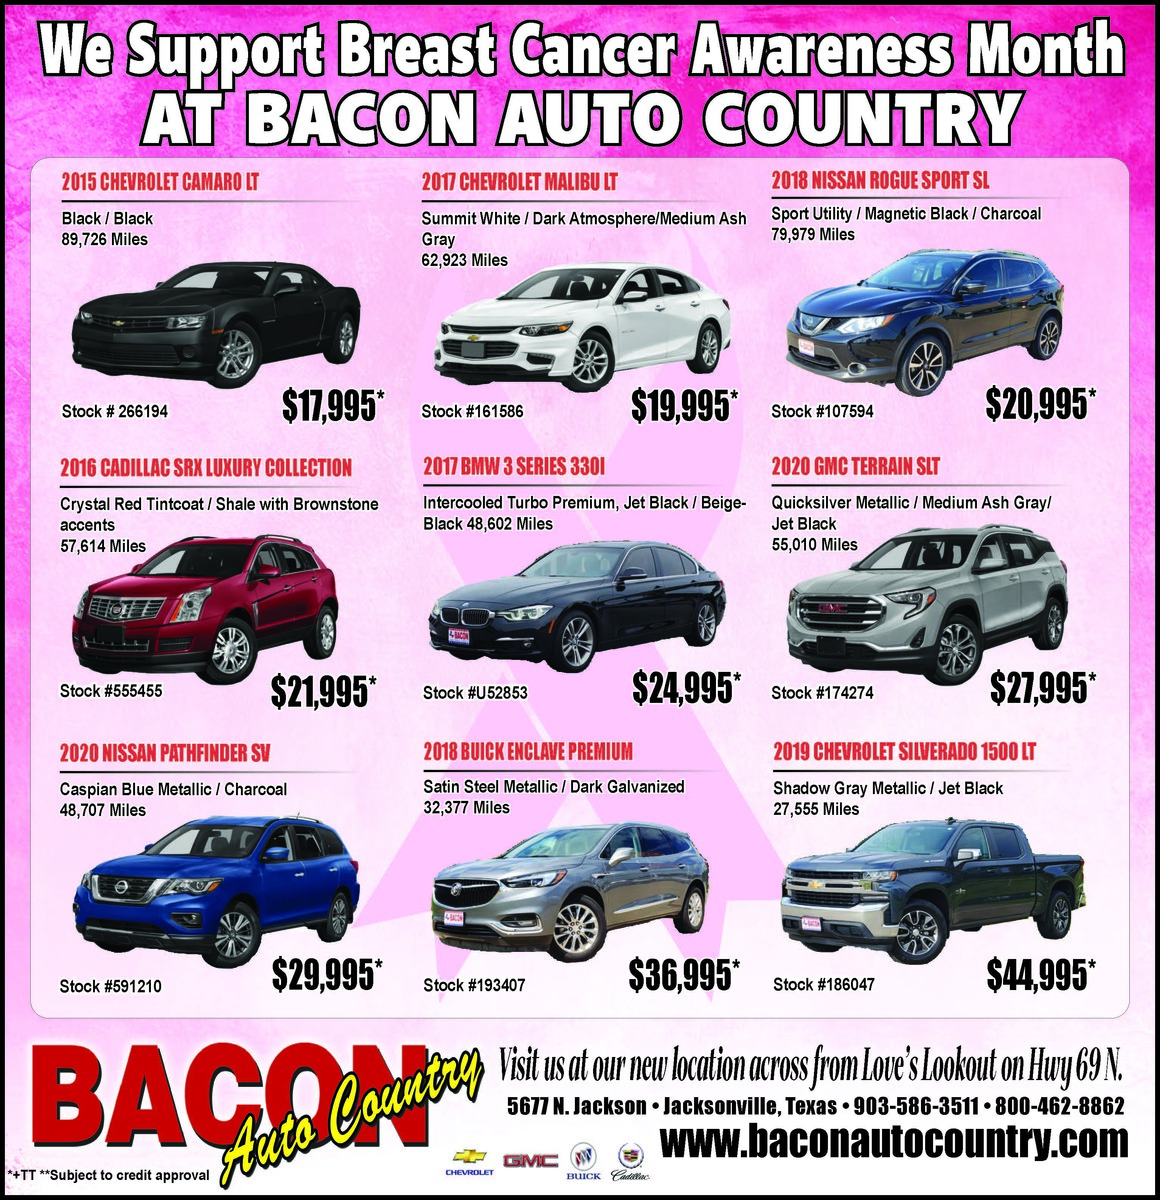 We Support Breast Cancer Awareness Month At Bacon Auto Country